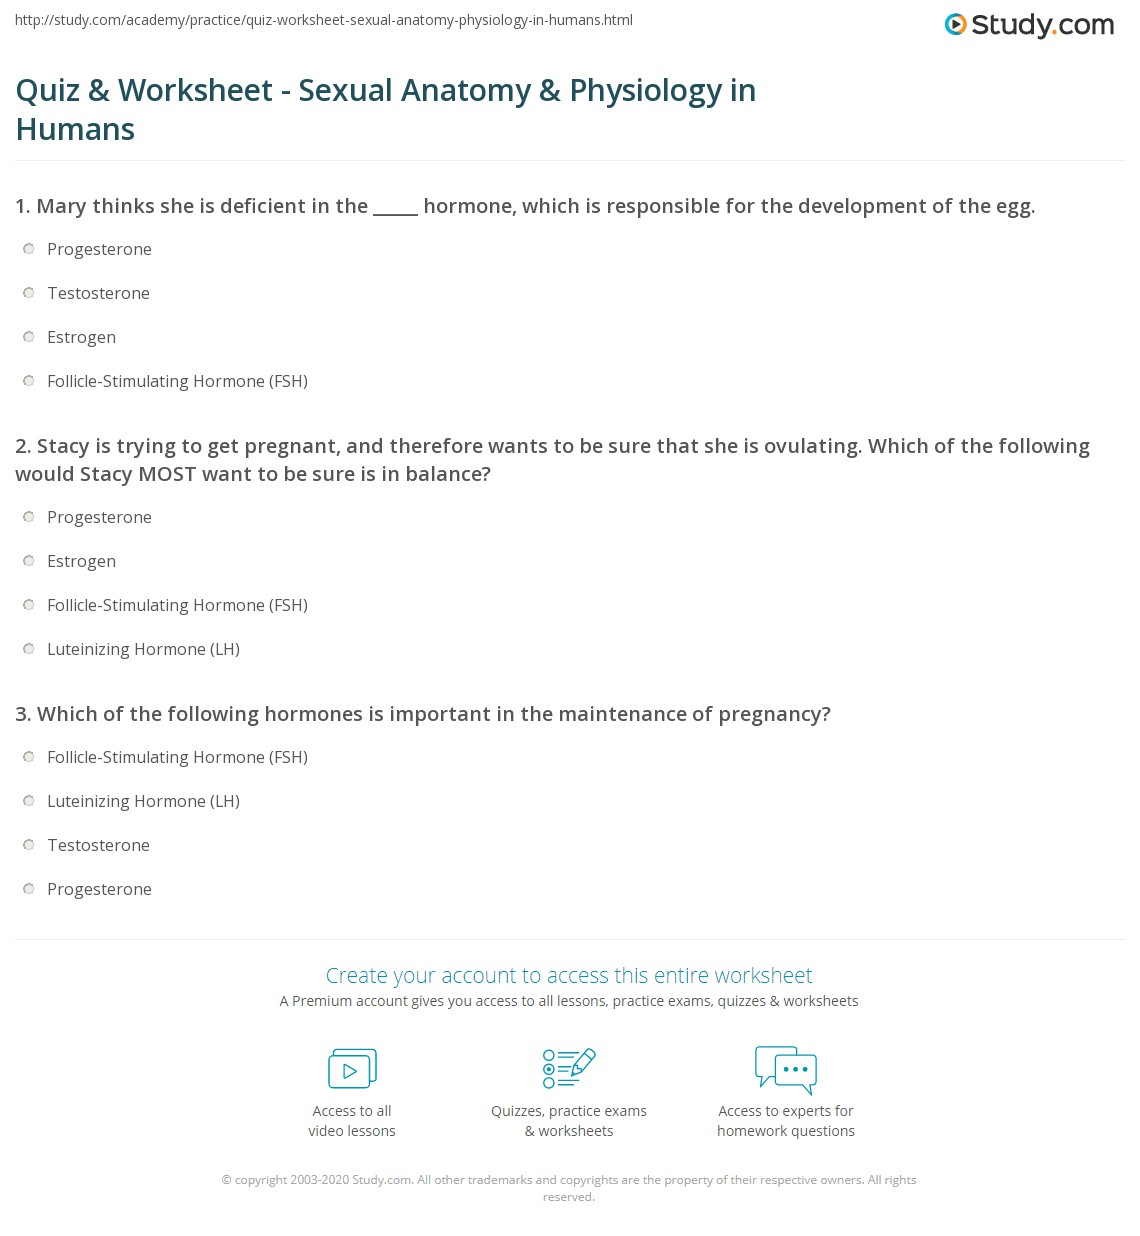 Worksheets Anatomy And Physiology Printable Worksheets quiz worksheet sexual anatomy physiology in humans study com print human major features functions worksheet